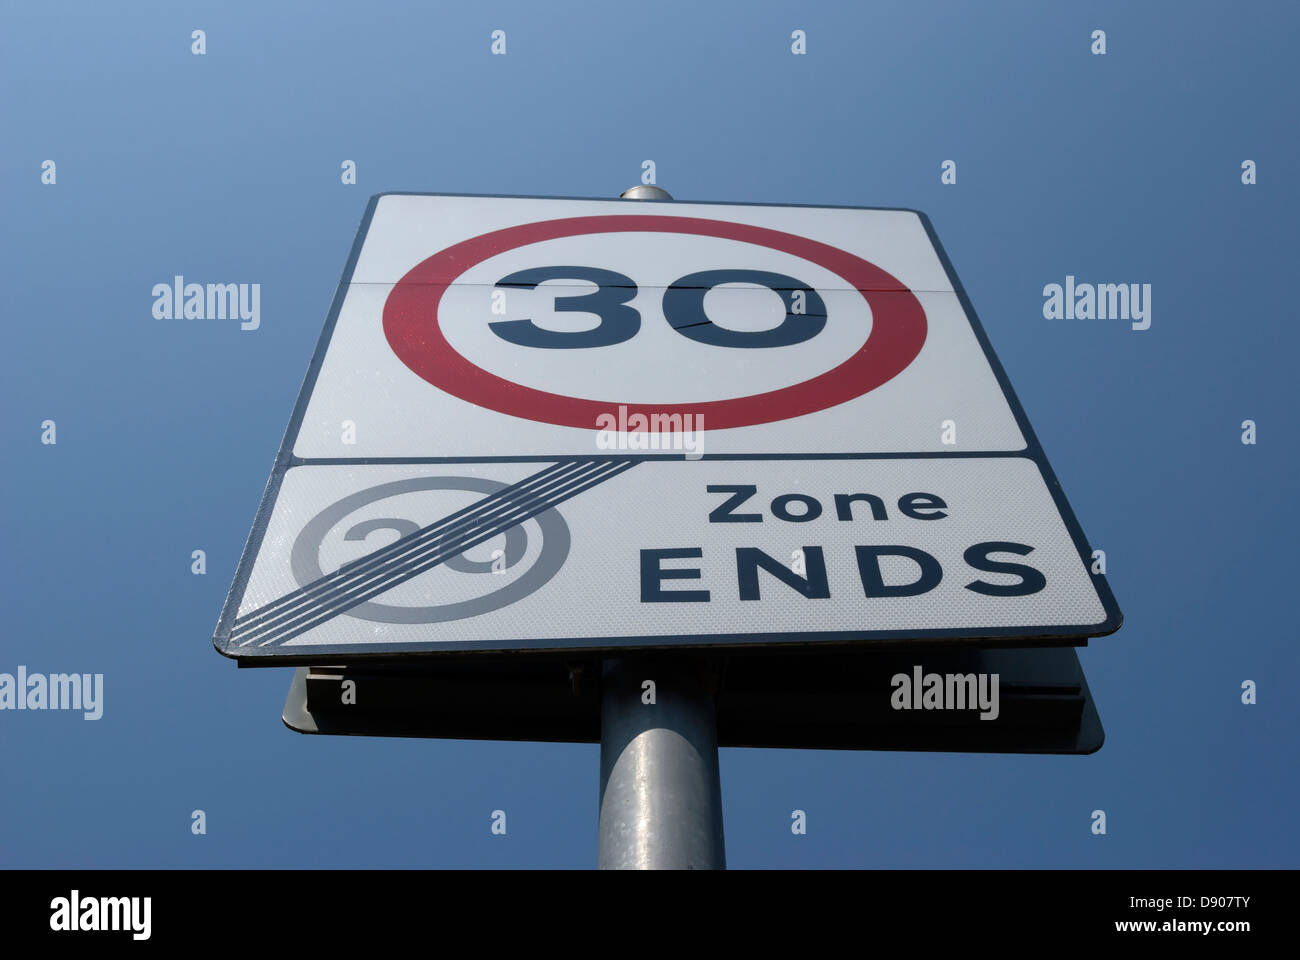 british road sign indicating end of 20mph zone and start of 30mph zone Stock Photo